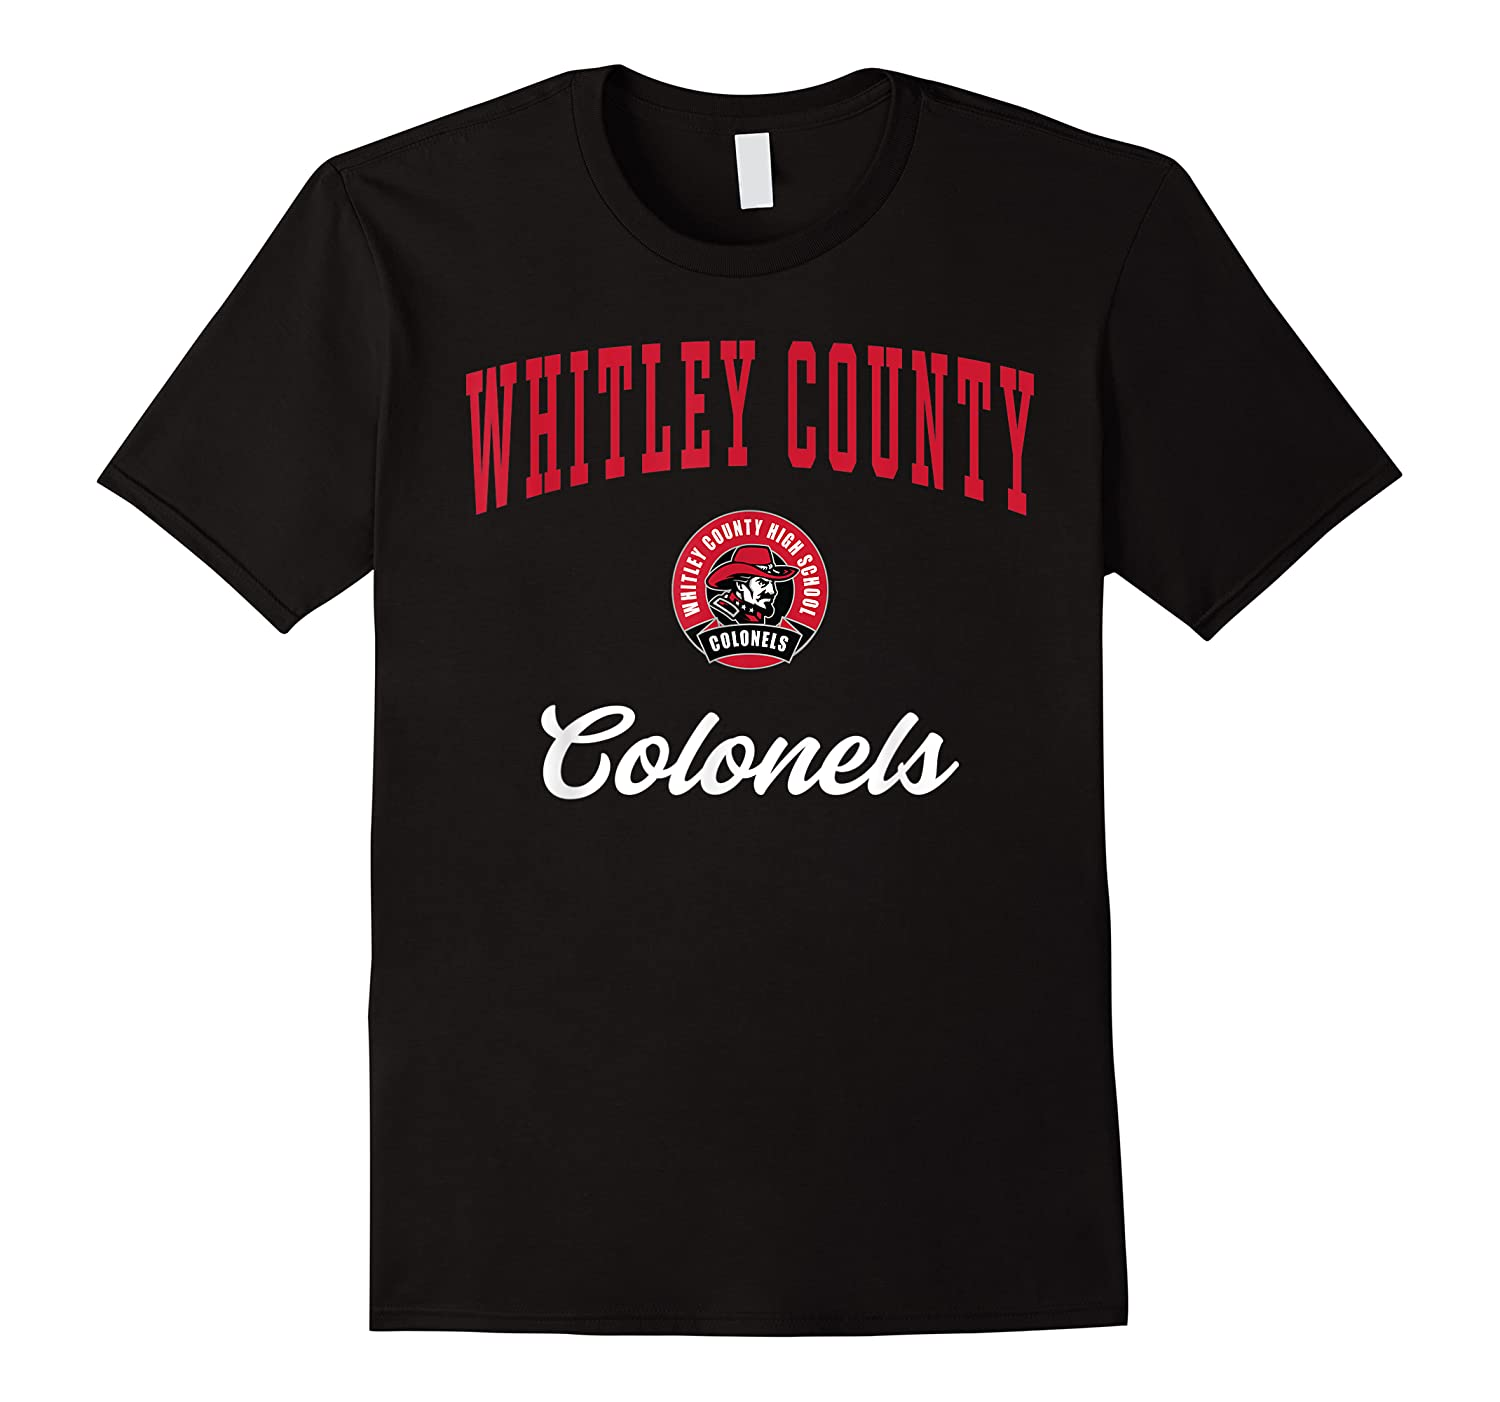 Whitley County High School Colonels Shirts